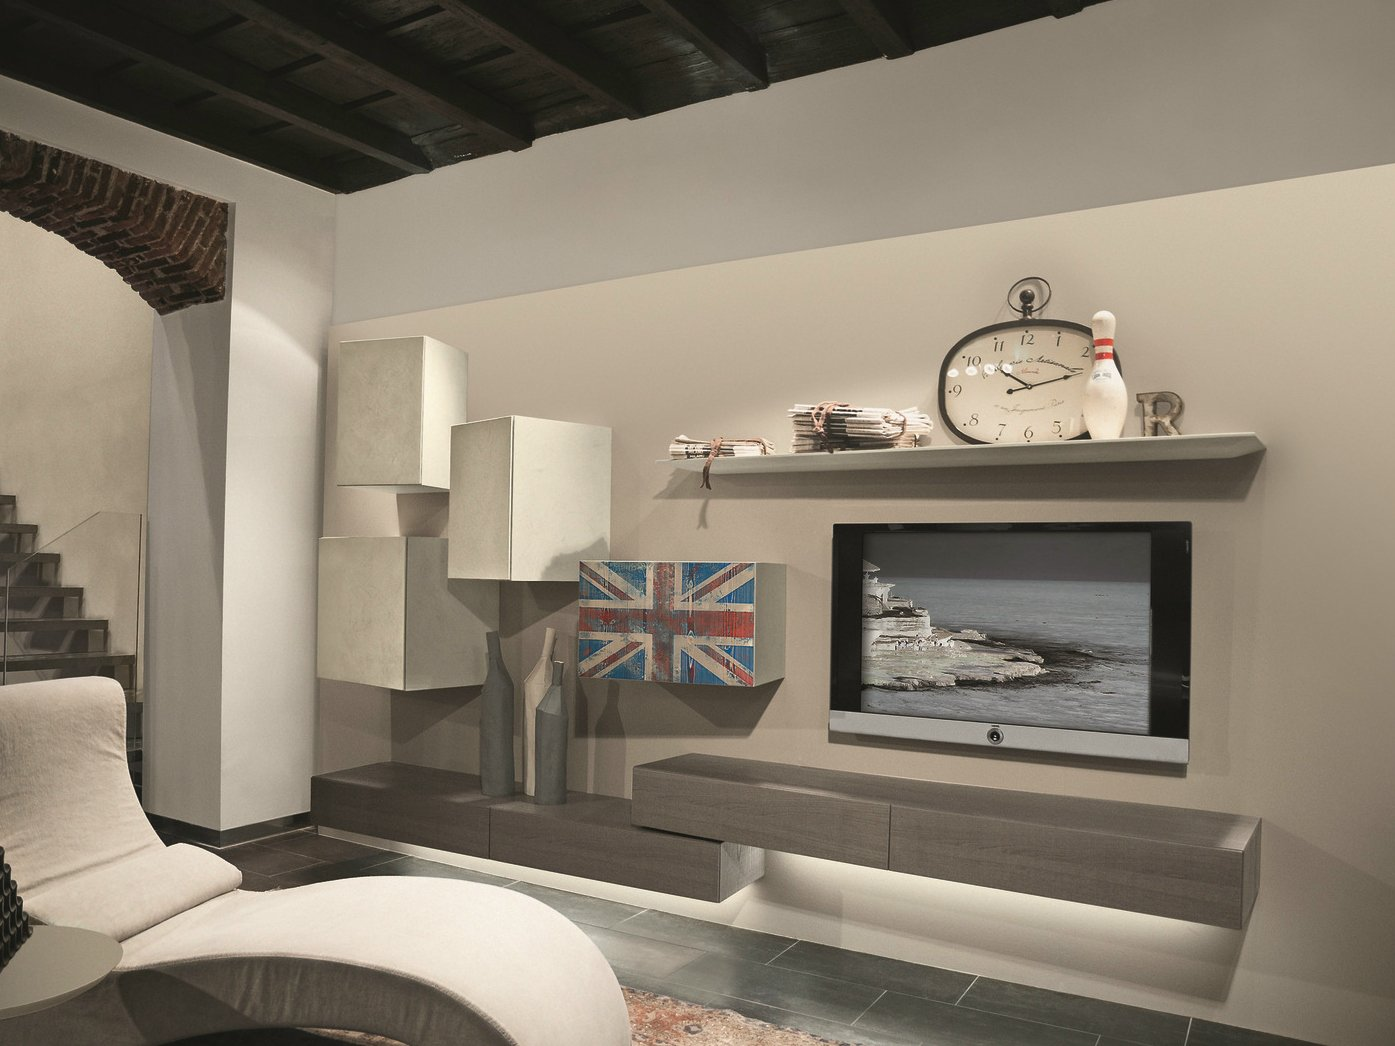 Sectional wall mounted tv wall system inclinart 313 by - Mobili tv vintage ...